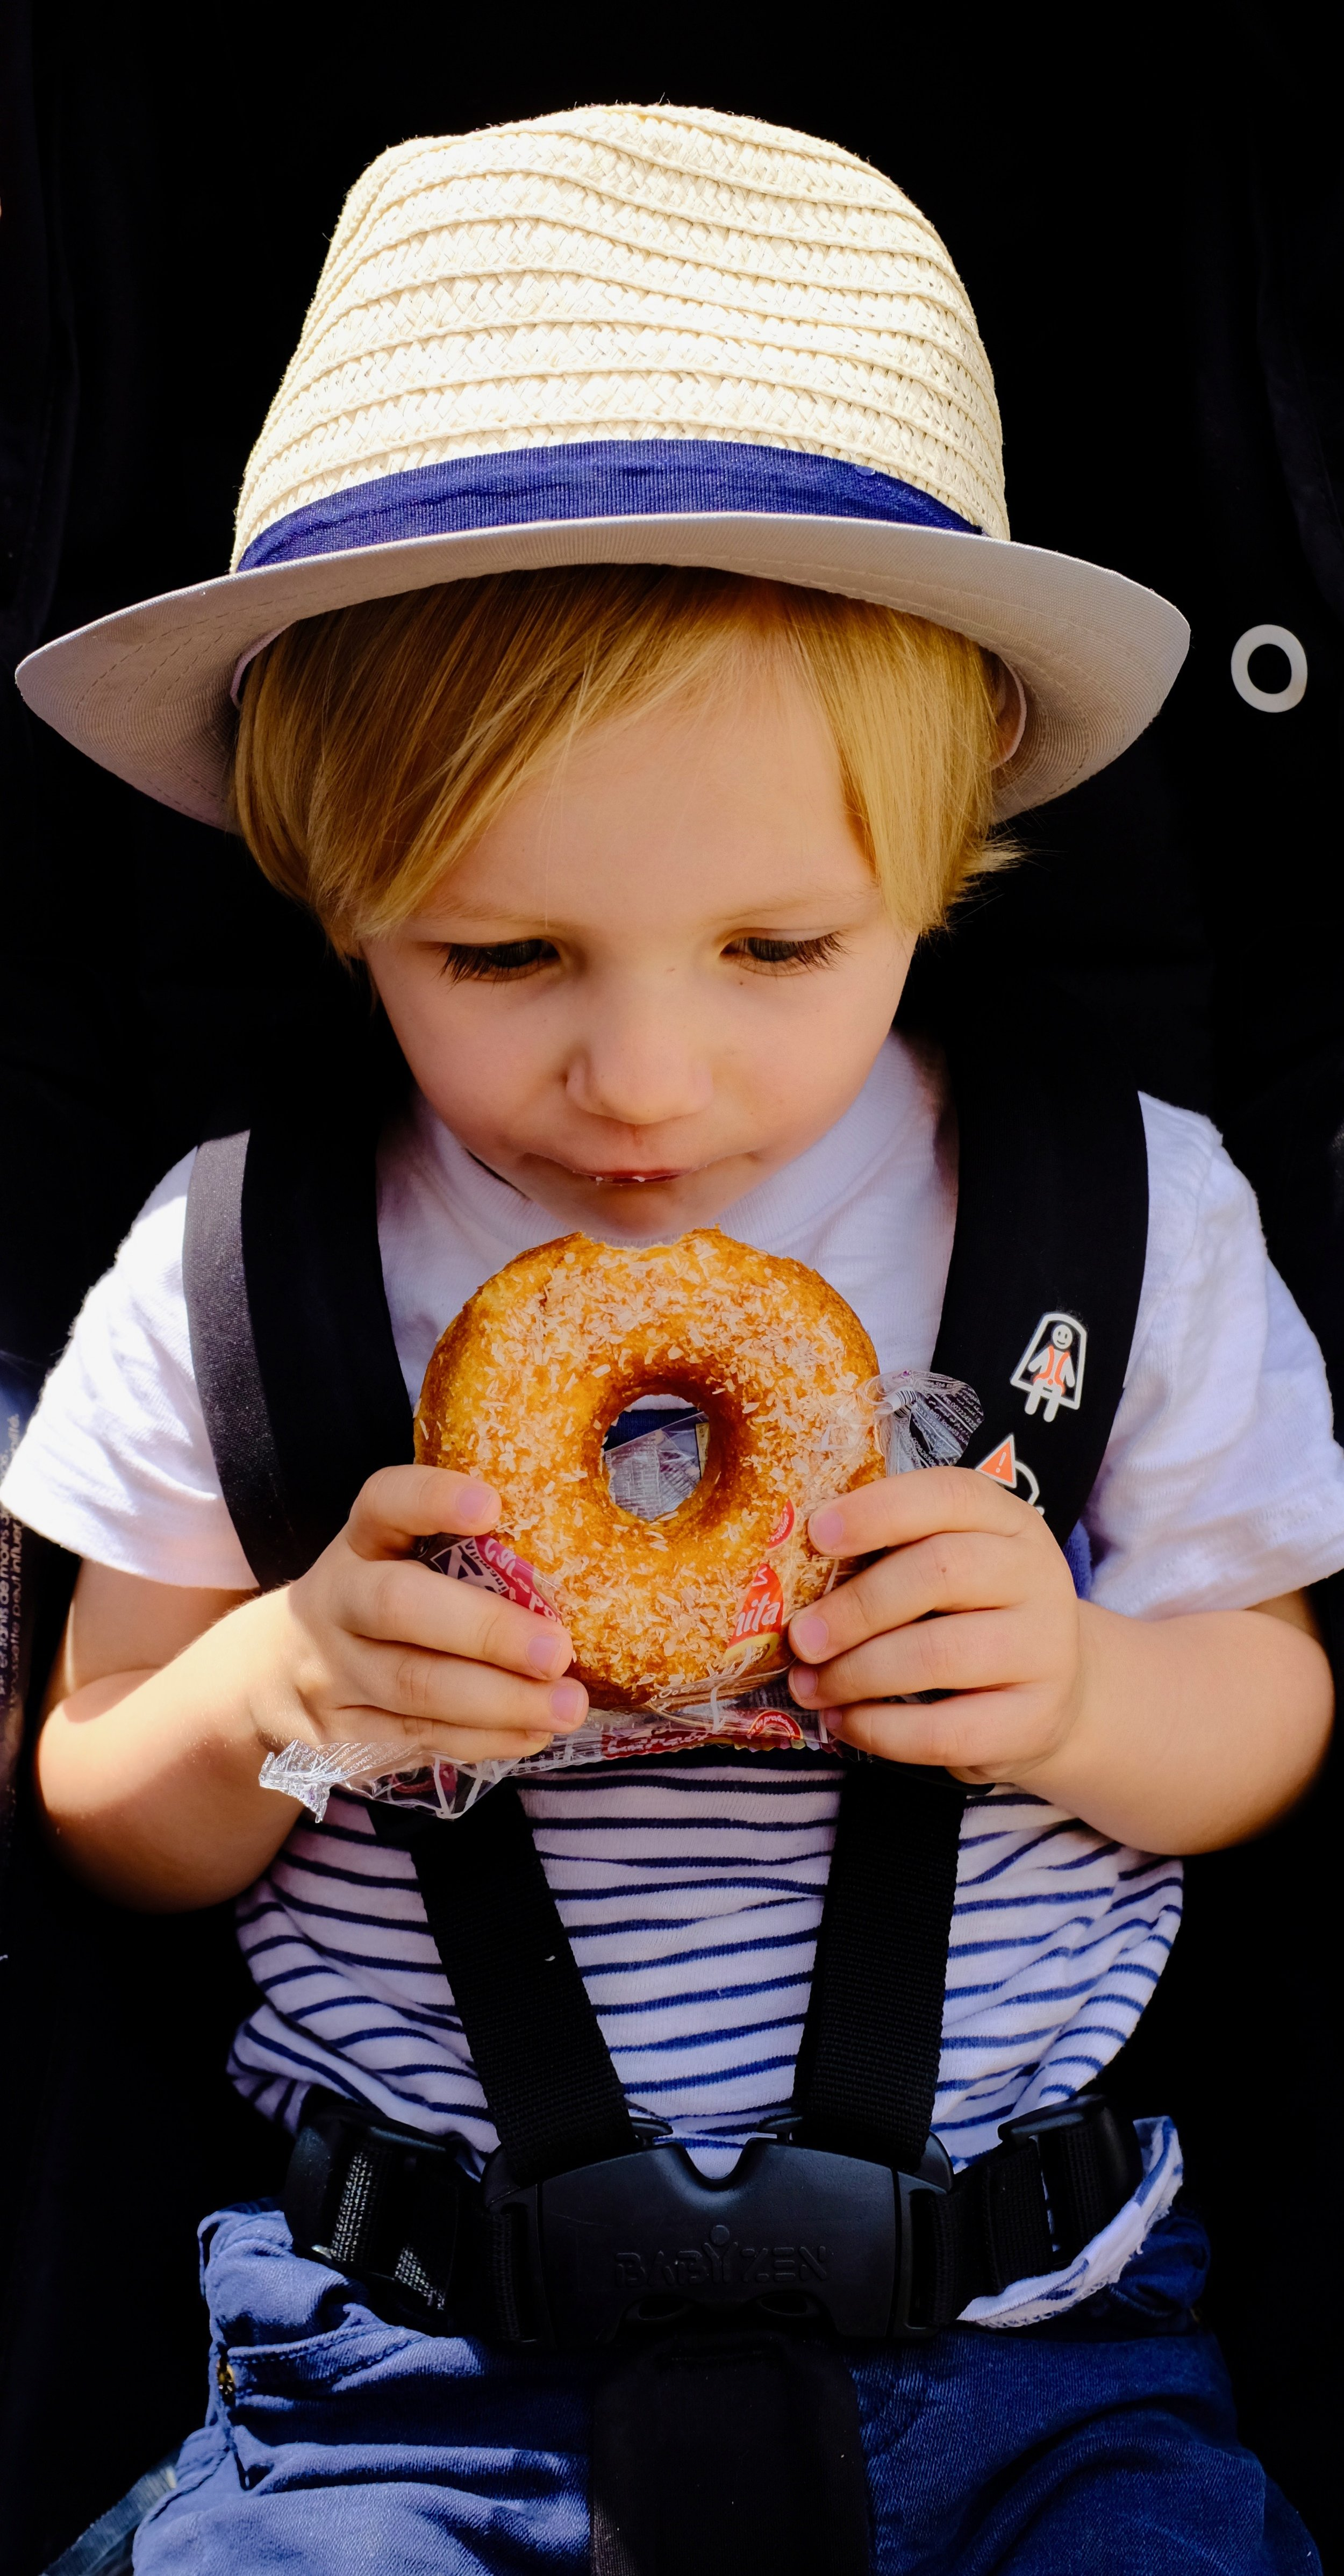 Eating a donut in Tétouan, Morocco.